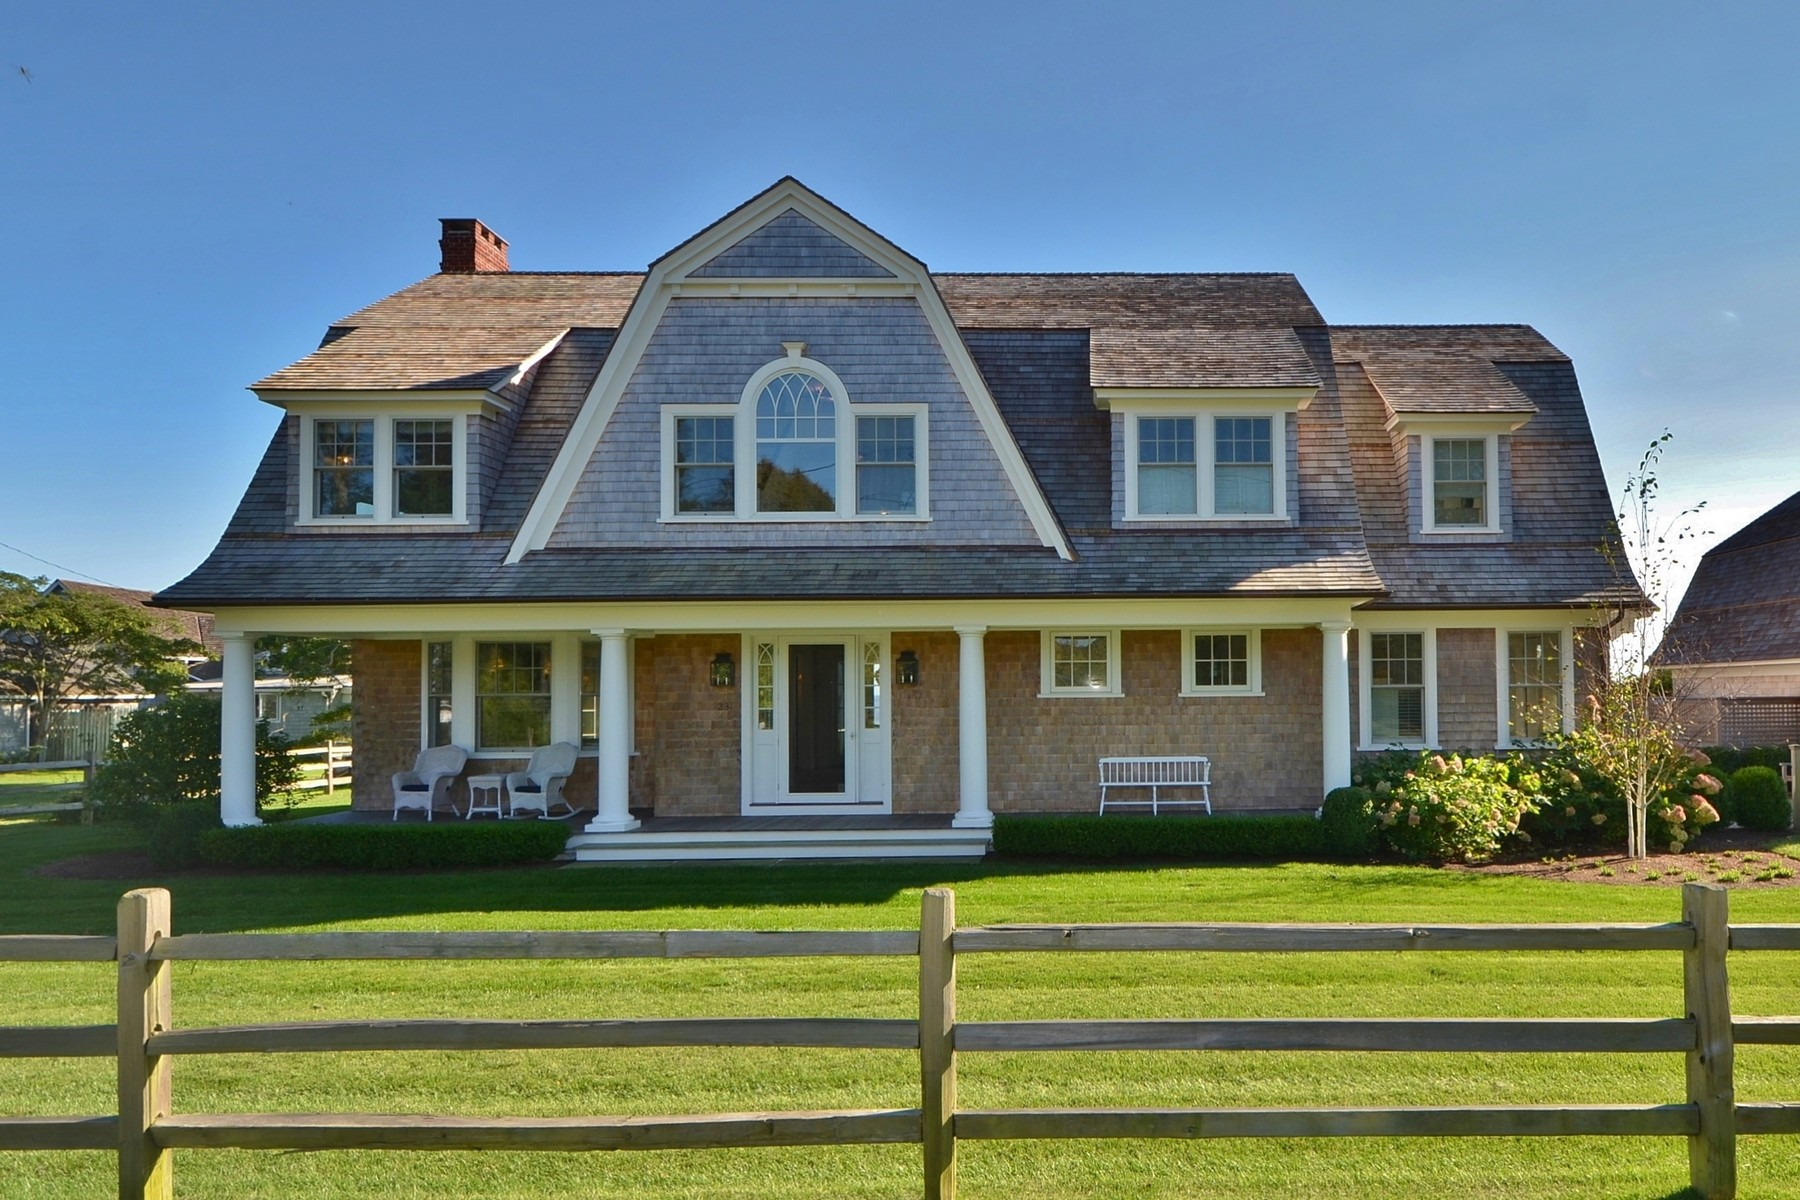 Single Family Homes for Sale at Beautiful Fenwick Waterfront Property 23 Pettipaug Avenue Old Saybrook, Connecticut 06475 United States